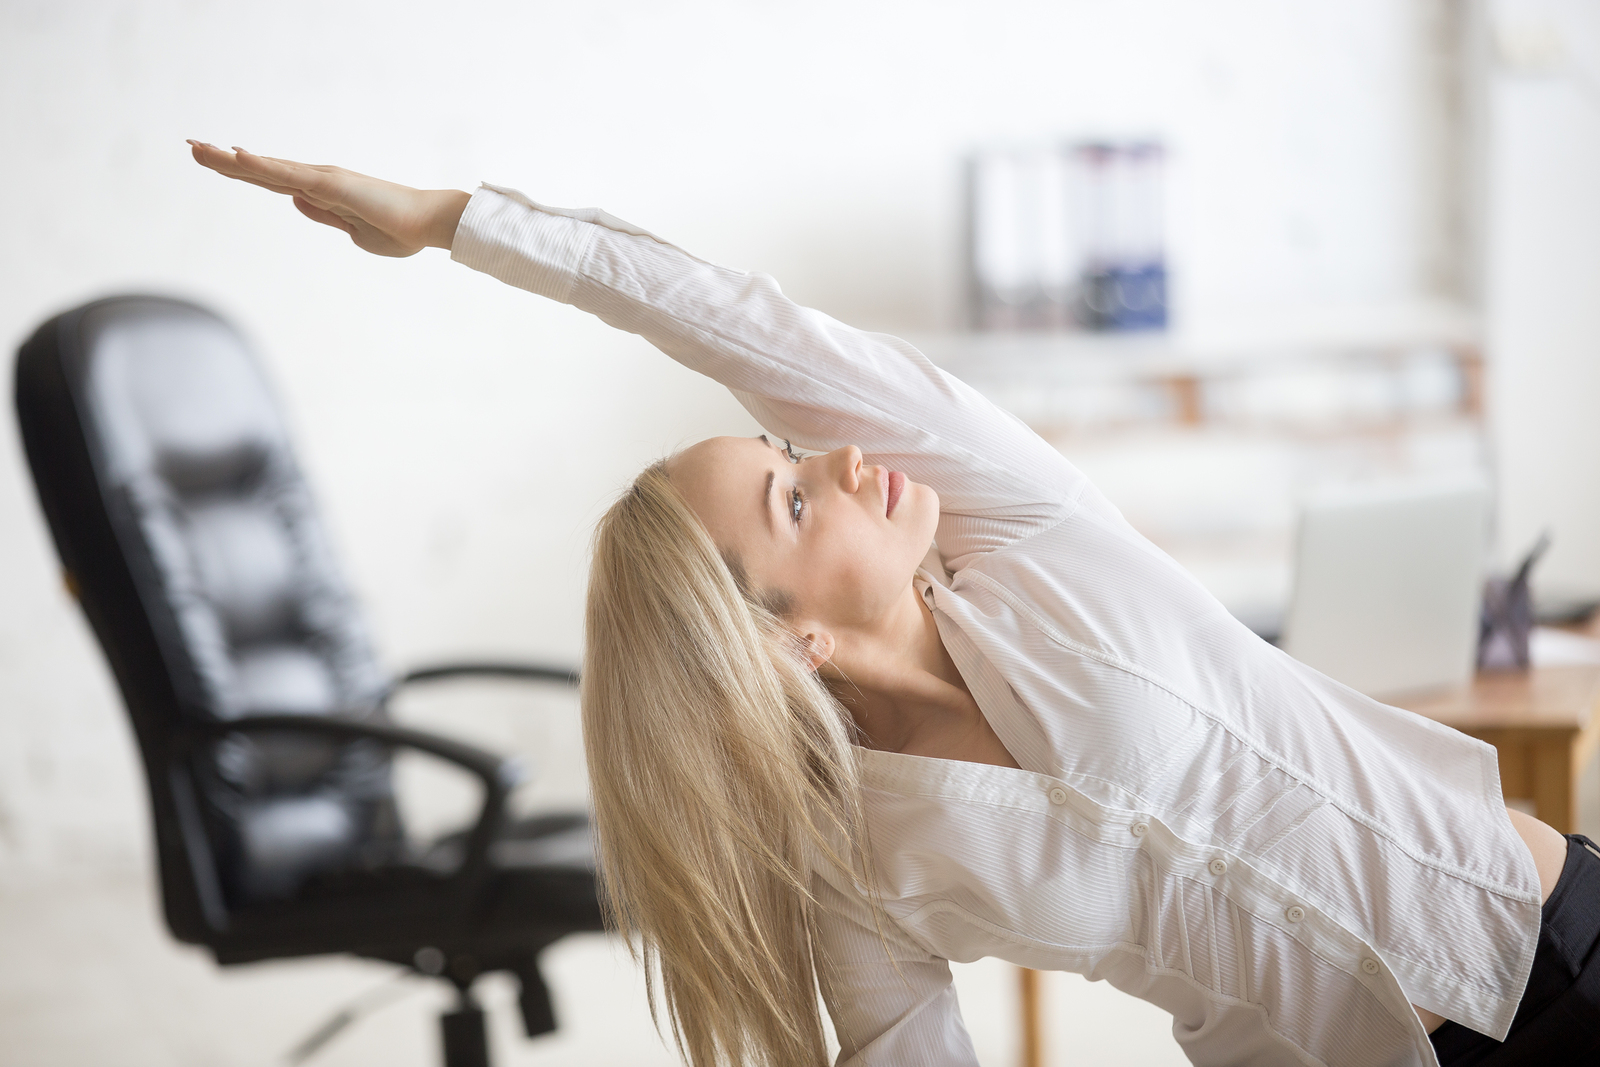 7 Spectacular Reasons for Promoting Fitness in the Workplace